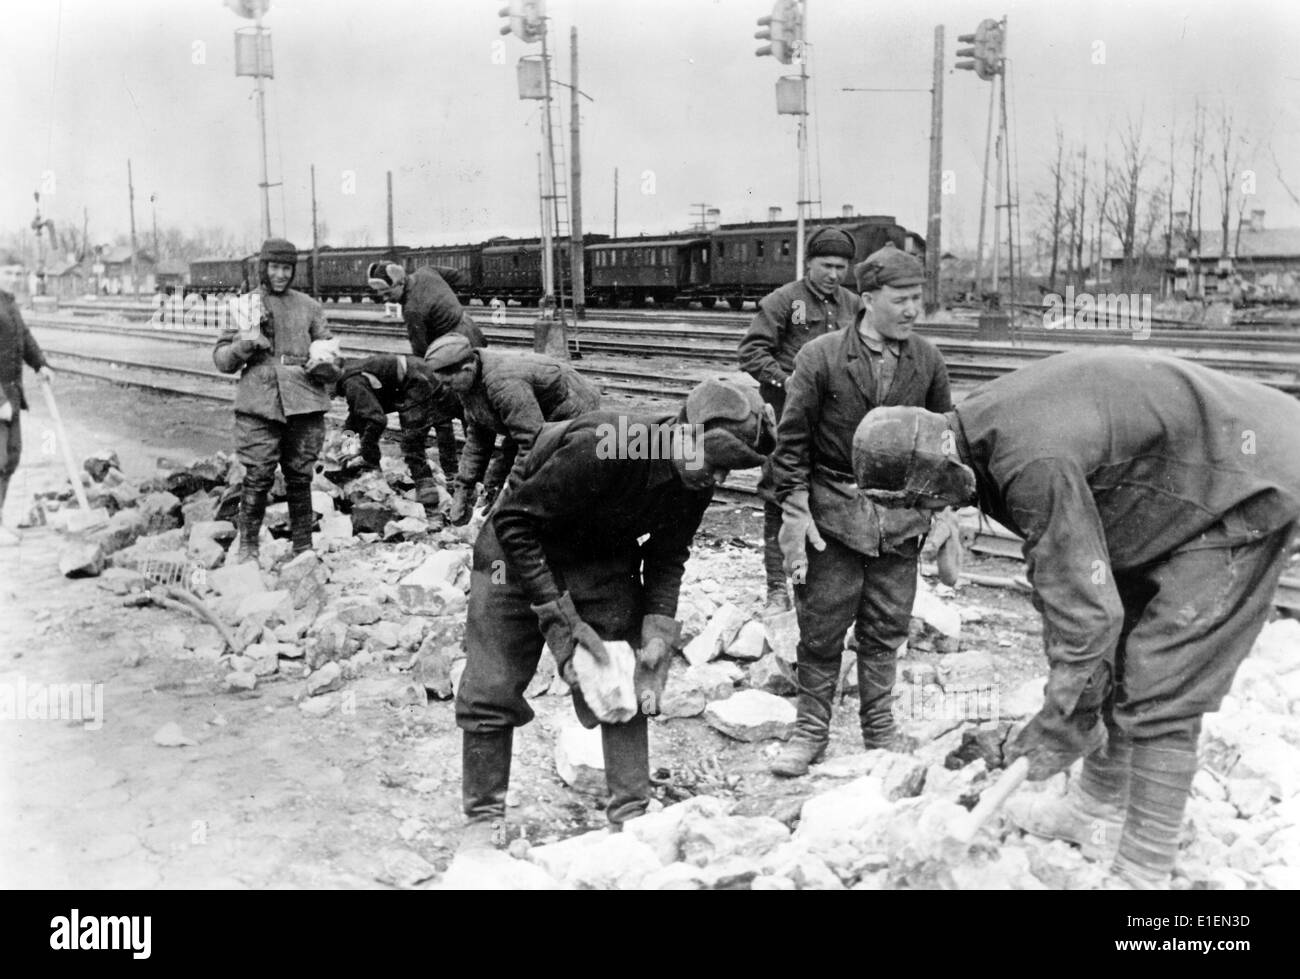 The Nazi propaganda photo shows Soviet POWs who are being forced to work clearing up behind the Eastern Front in Stock Photo